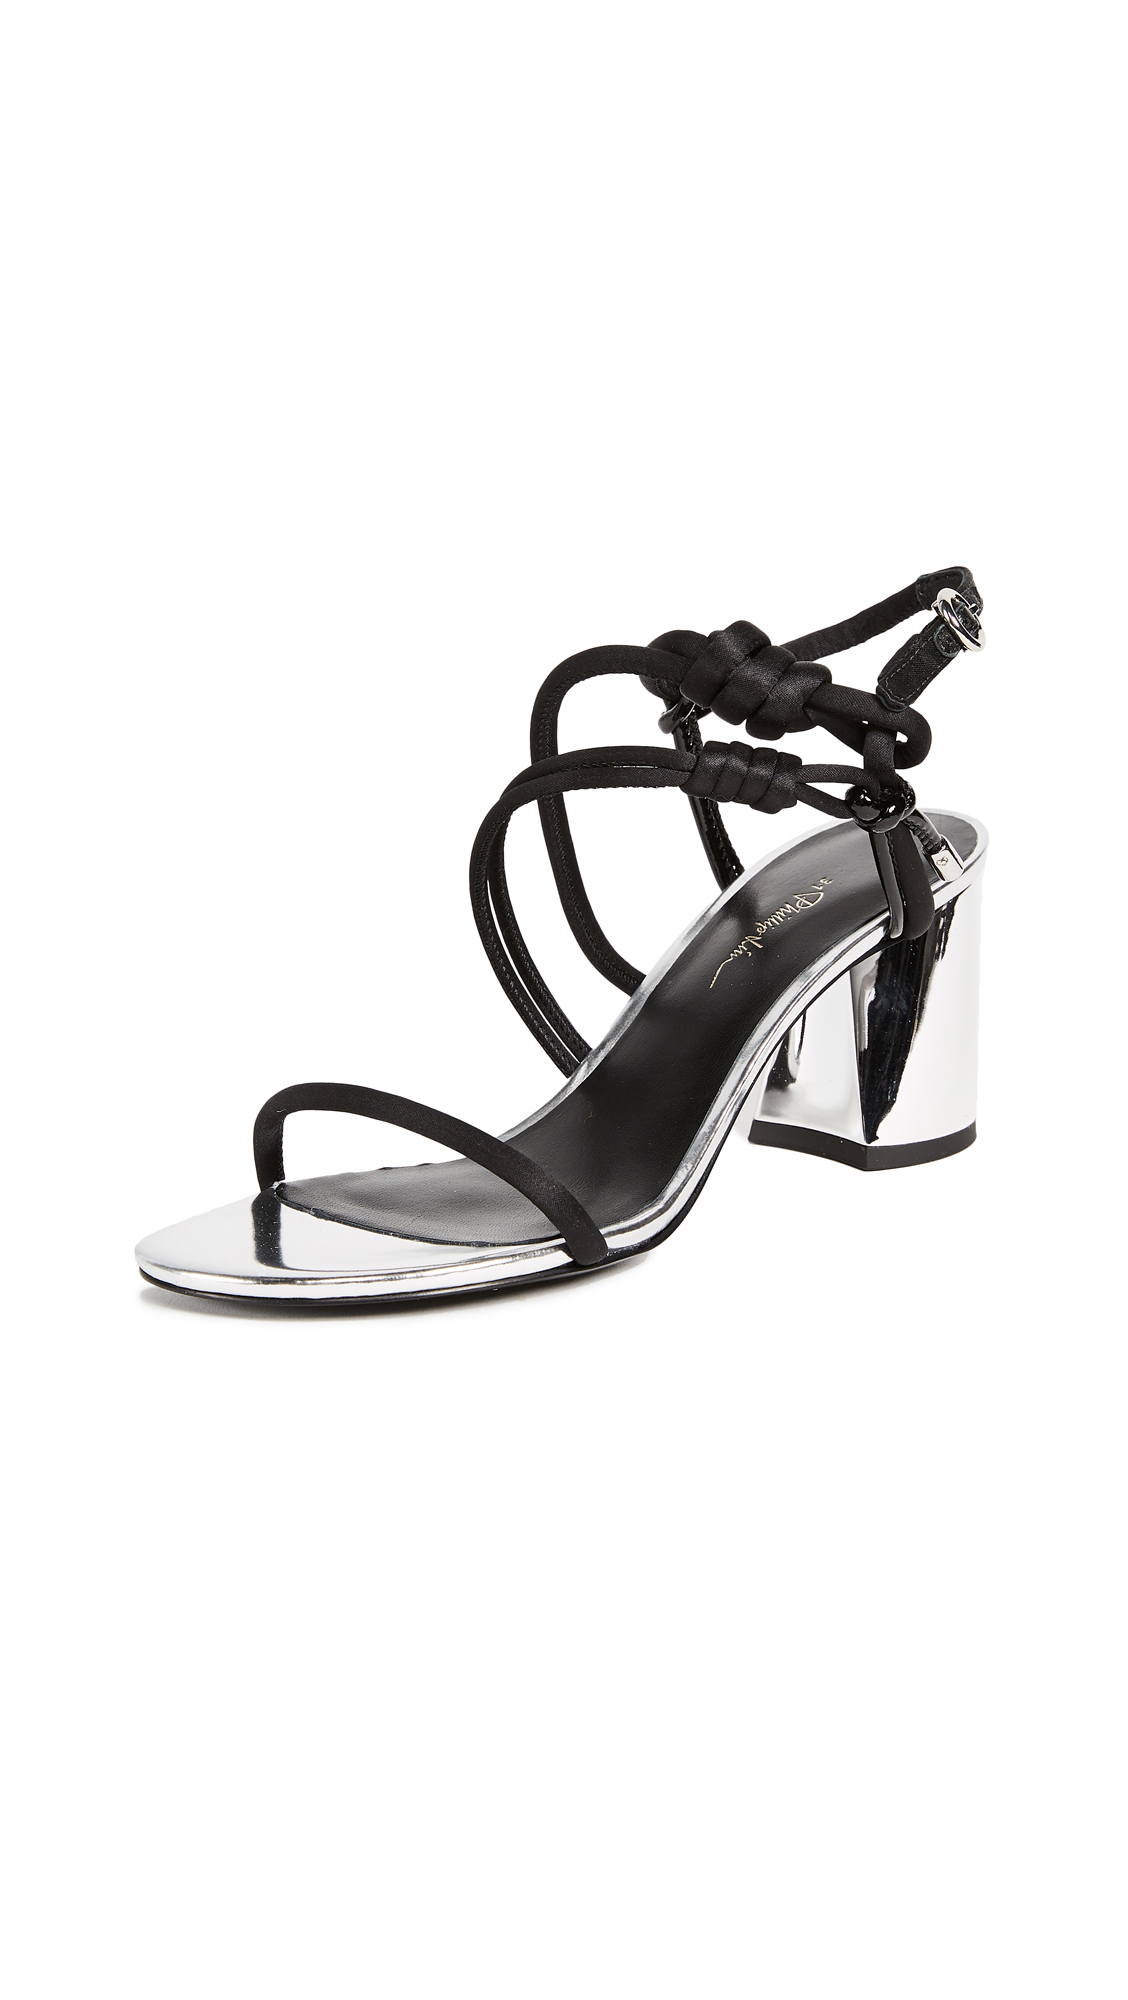 3.1 Phillip Lim Drum Sandals - Black/Silver